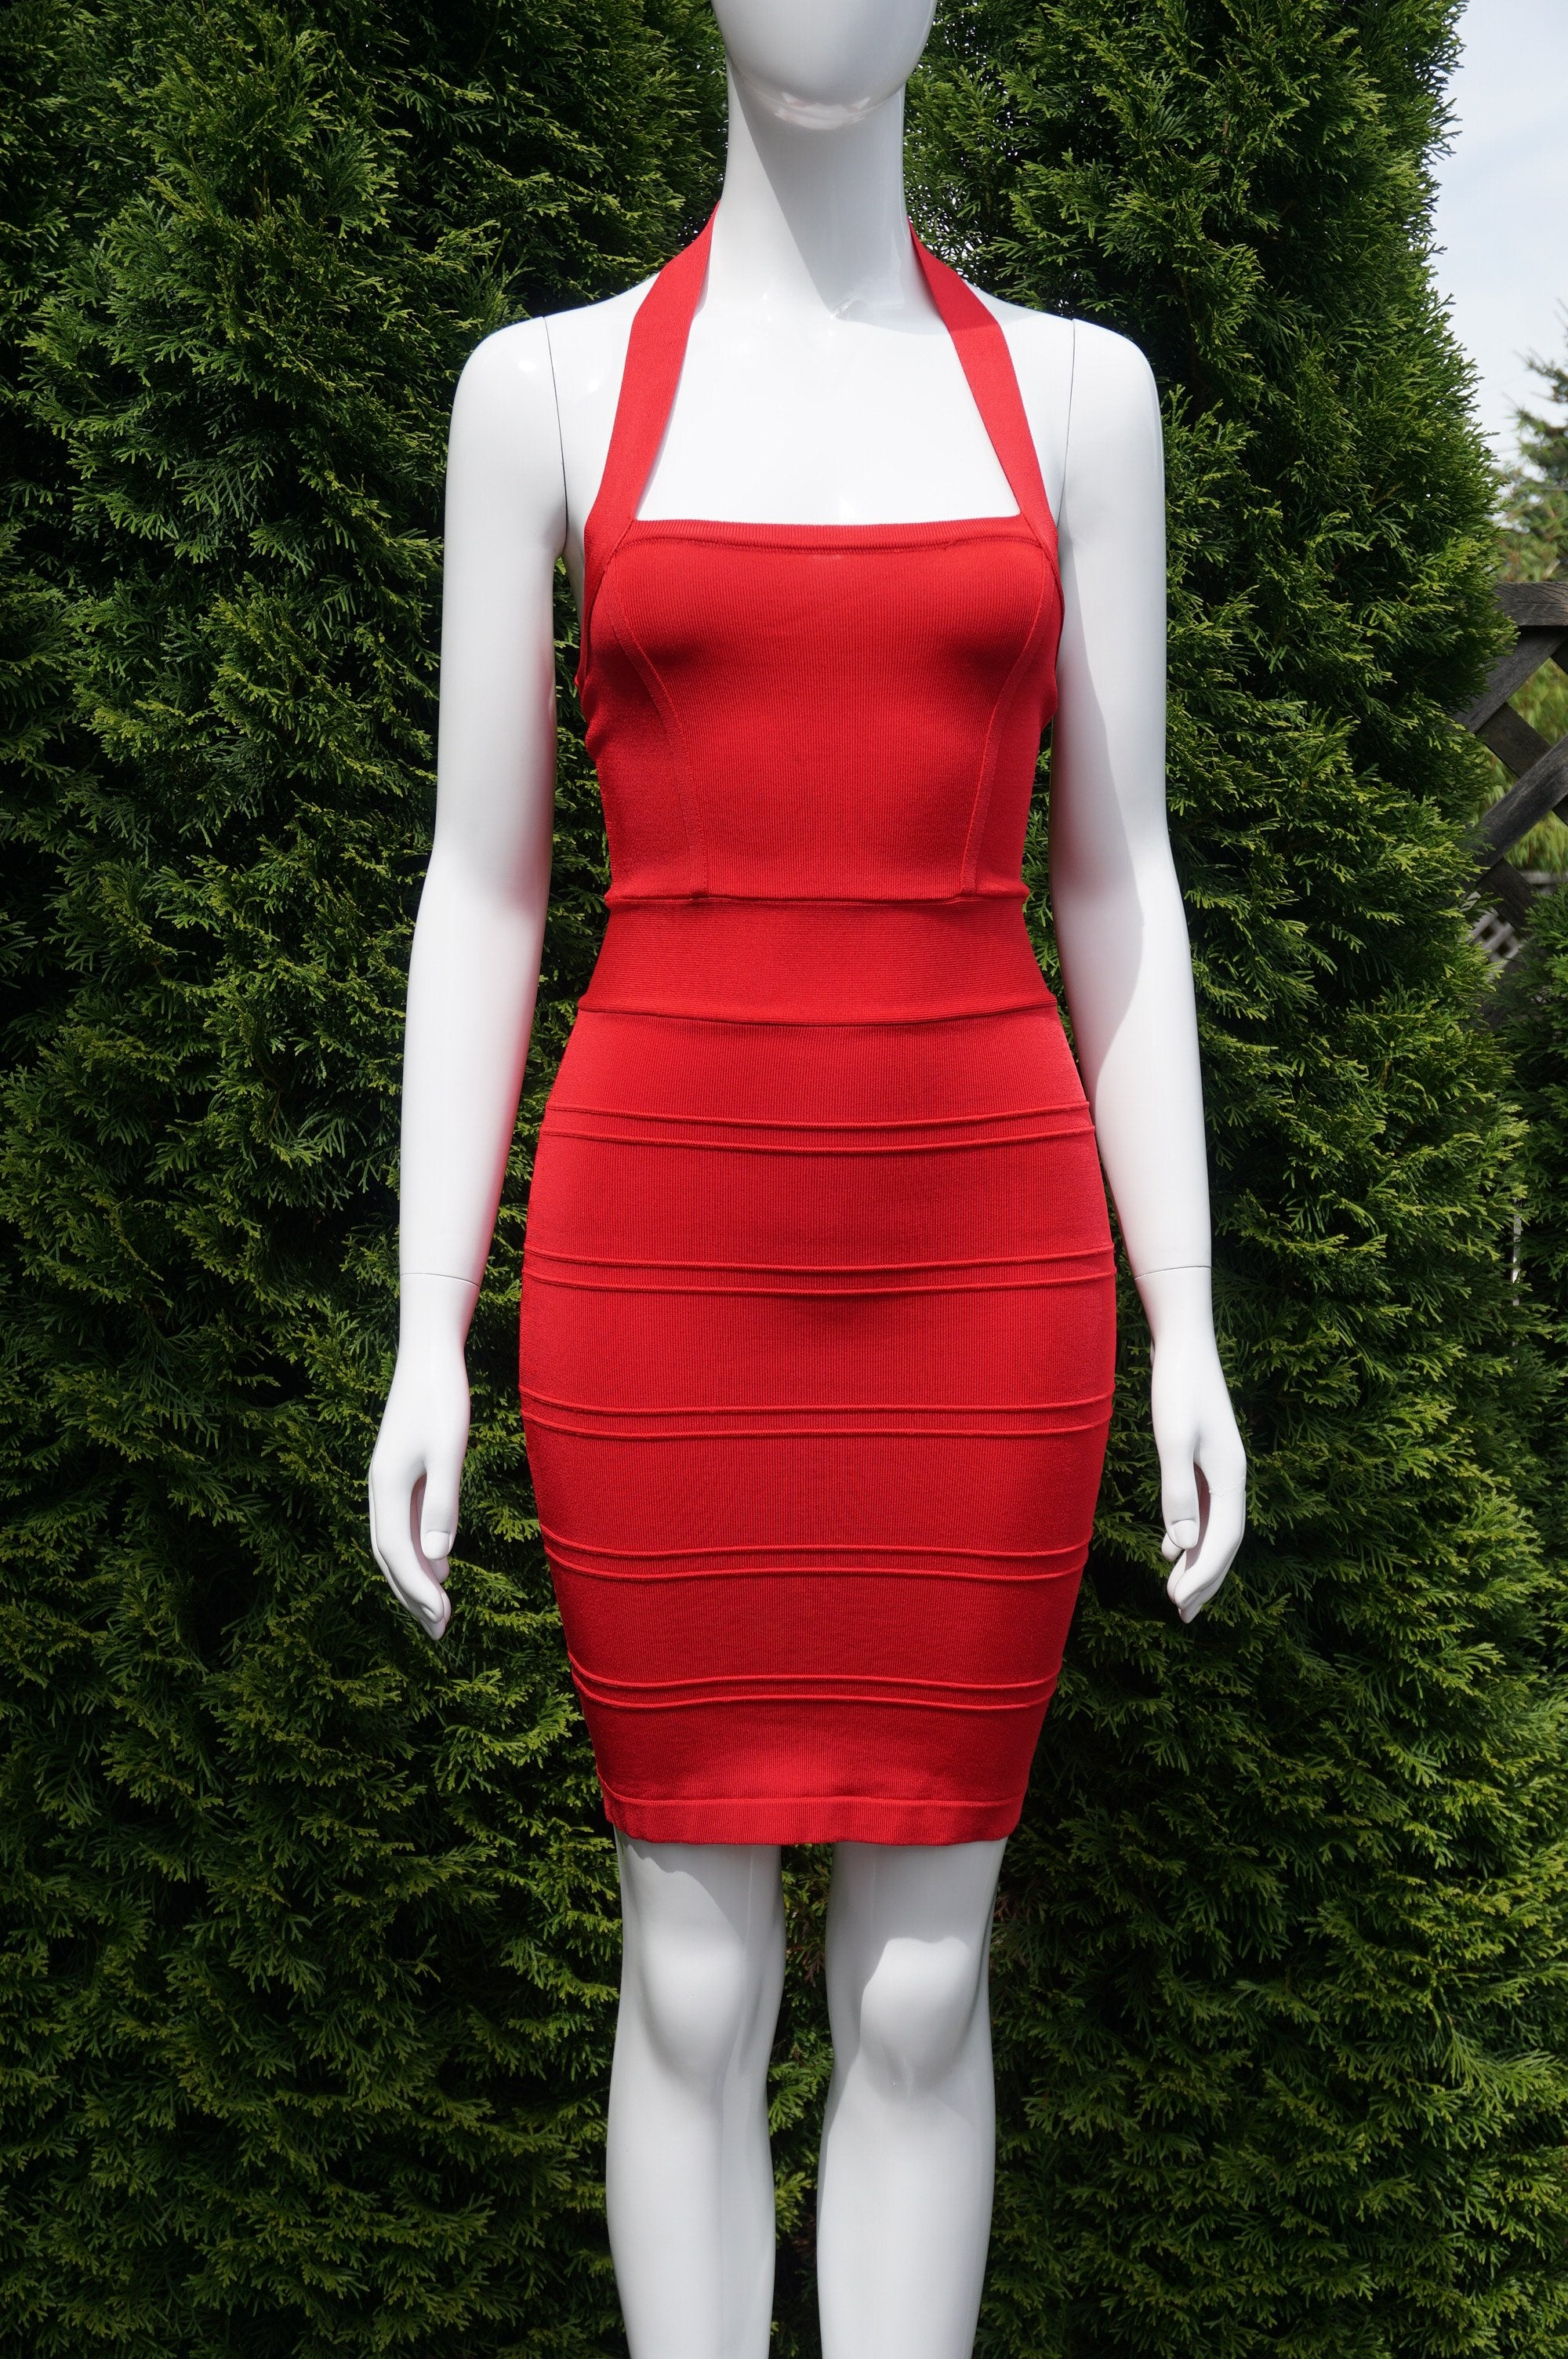 Bebe Solid Red Halted Neck Bodycon Dress , You are confident. Choose an iconic influential solid red body dress that exuberates your brilliance. Breast 25 inches, waist 23 inches, length 36 inches measured from the shoulder., Pink, Red, women's Dresses & Rompers, women's Pink, Red Dresses & Rompers, Bebe women's Dresses & Rompers, Red Bodycon Dress, halted neck dress, sheath dress